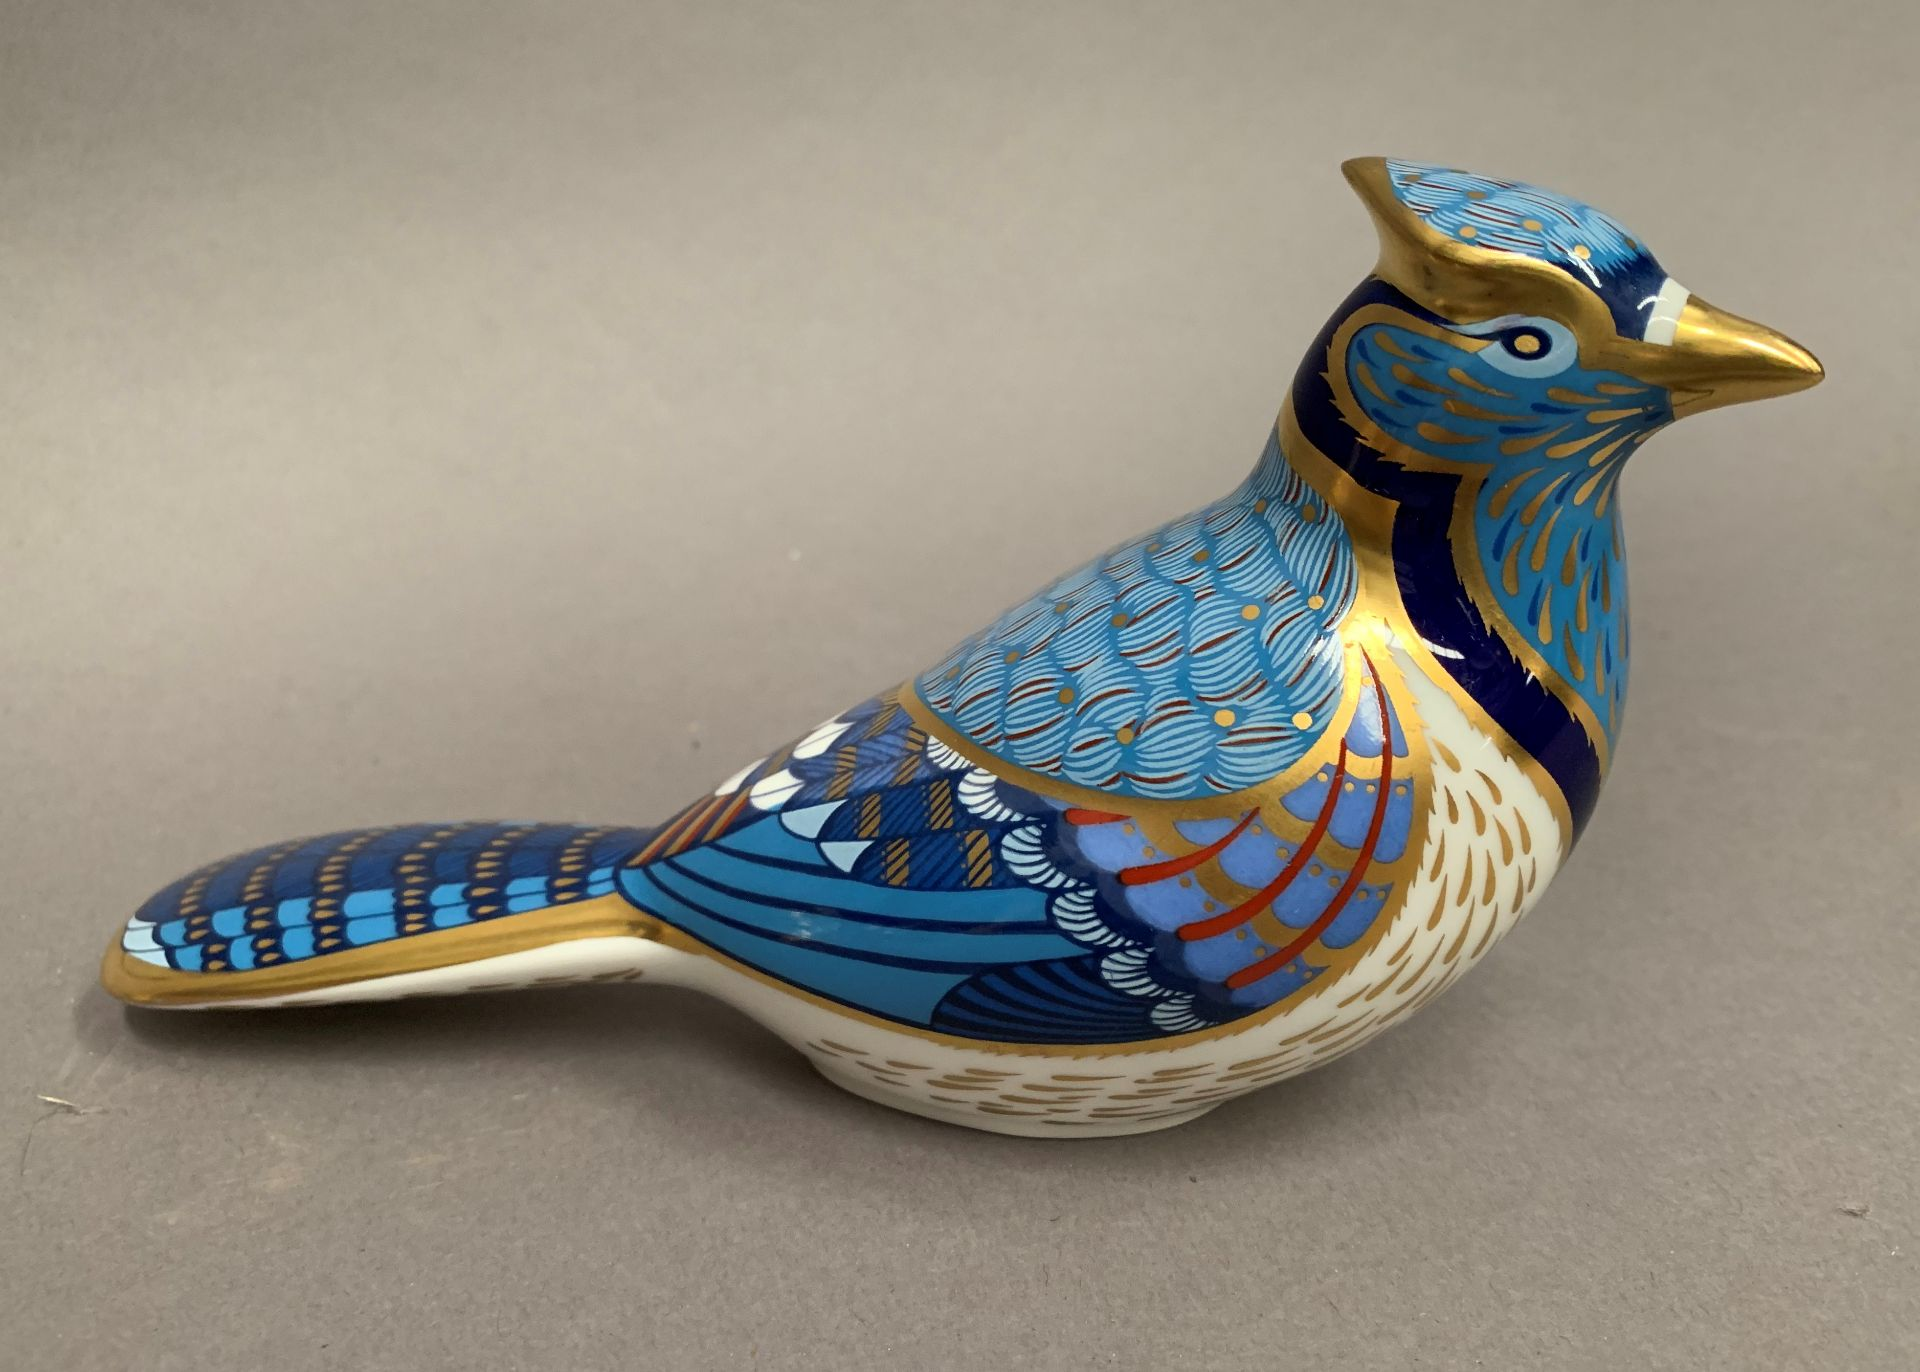 Lot 6 - Royal Crown Derby paperweight modelled as a bird, LXI,